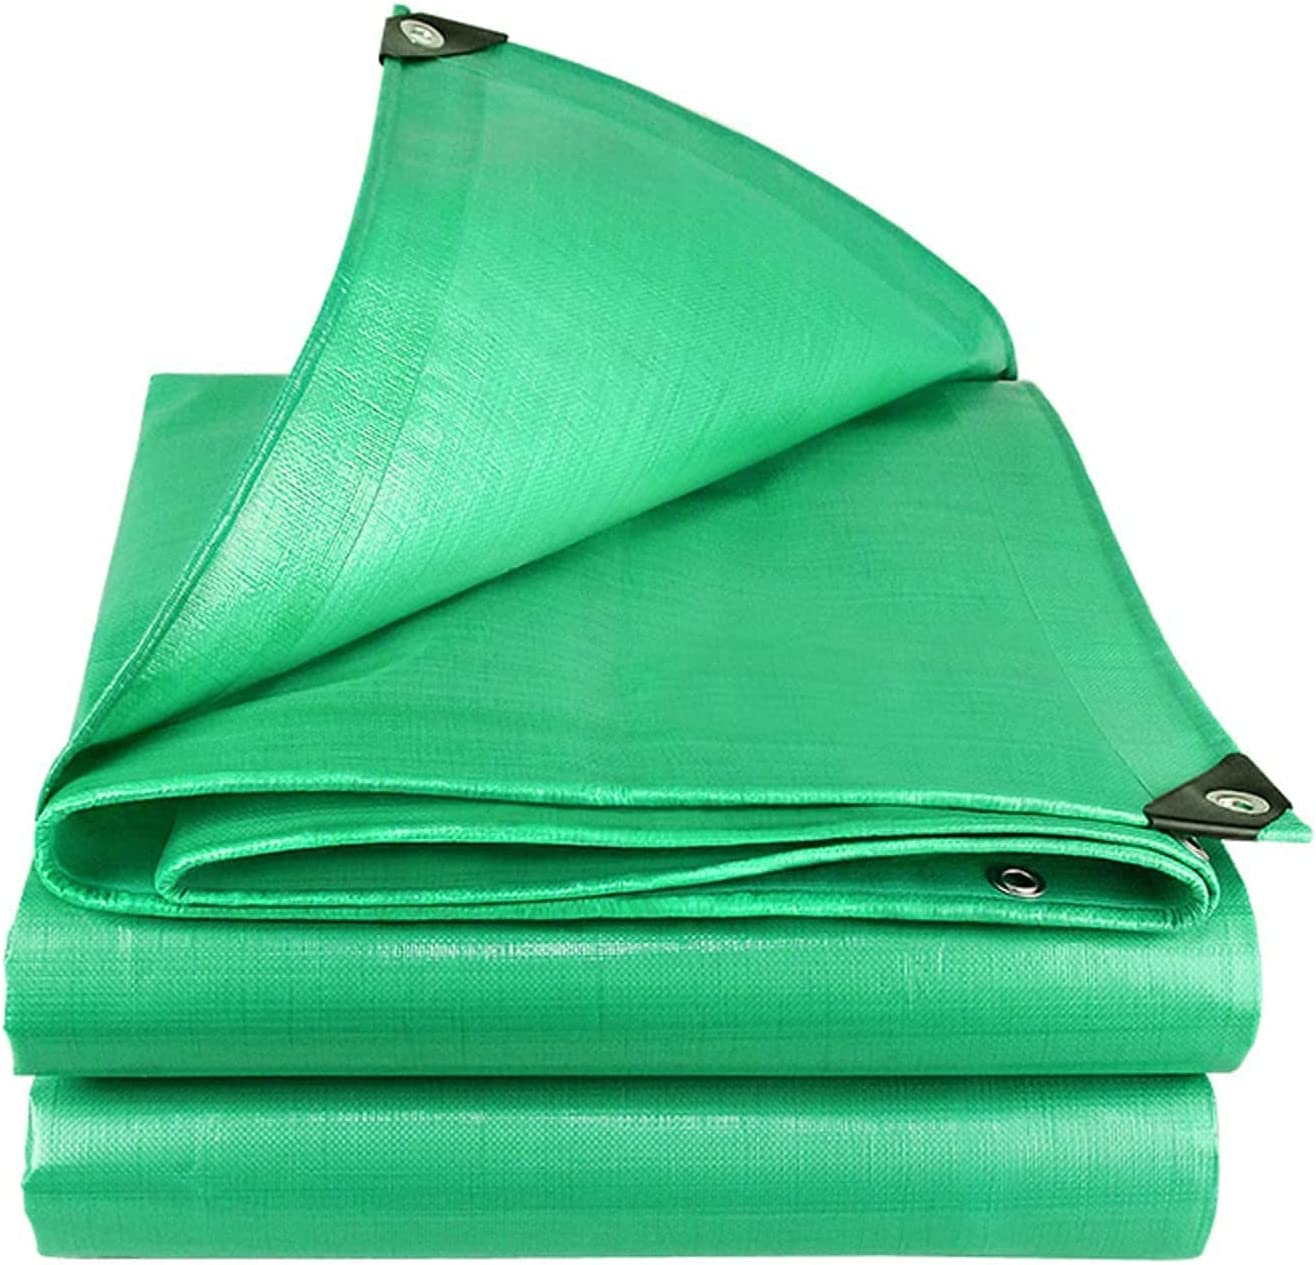 MVNZXL Tarps 16 Mil Thick Tarpaulin lowest price quality assurance Grommets D with Metal Heavy